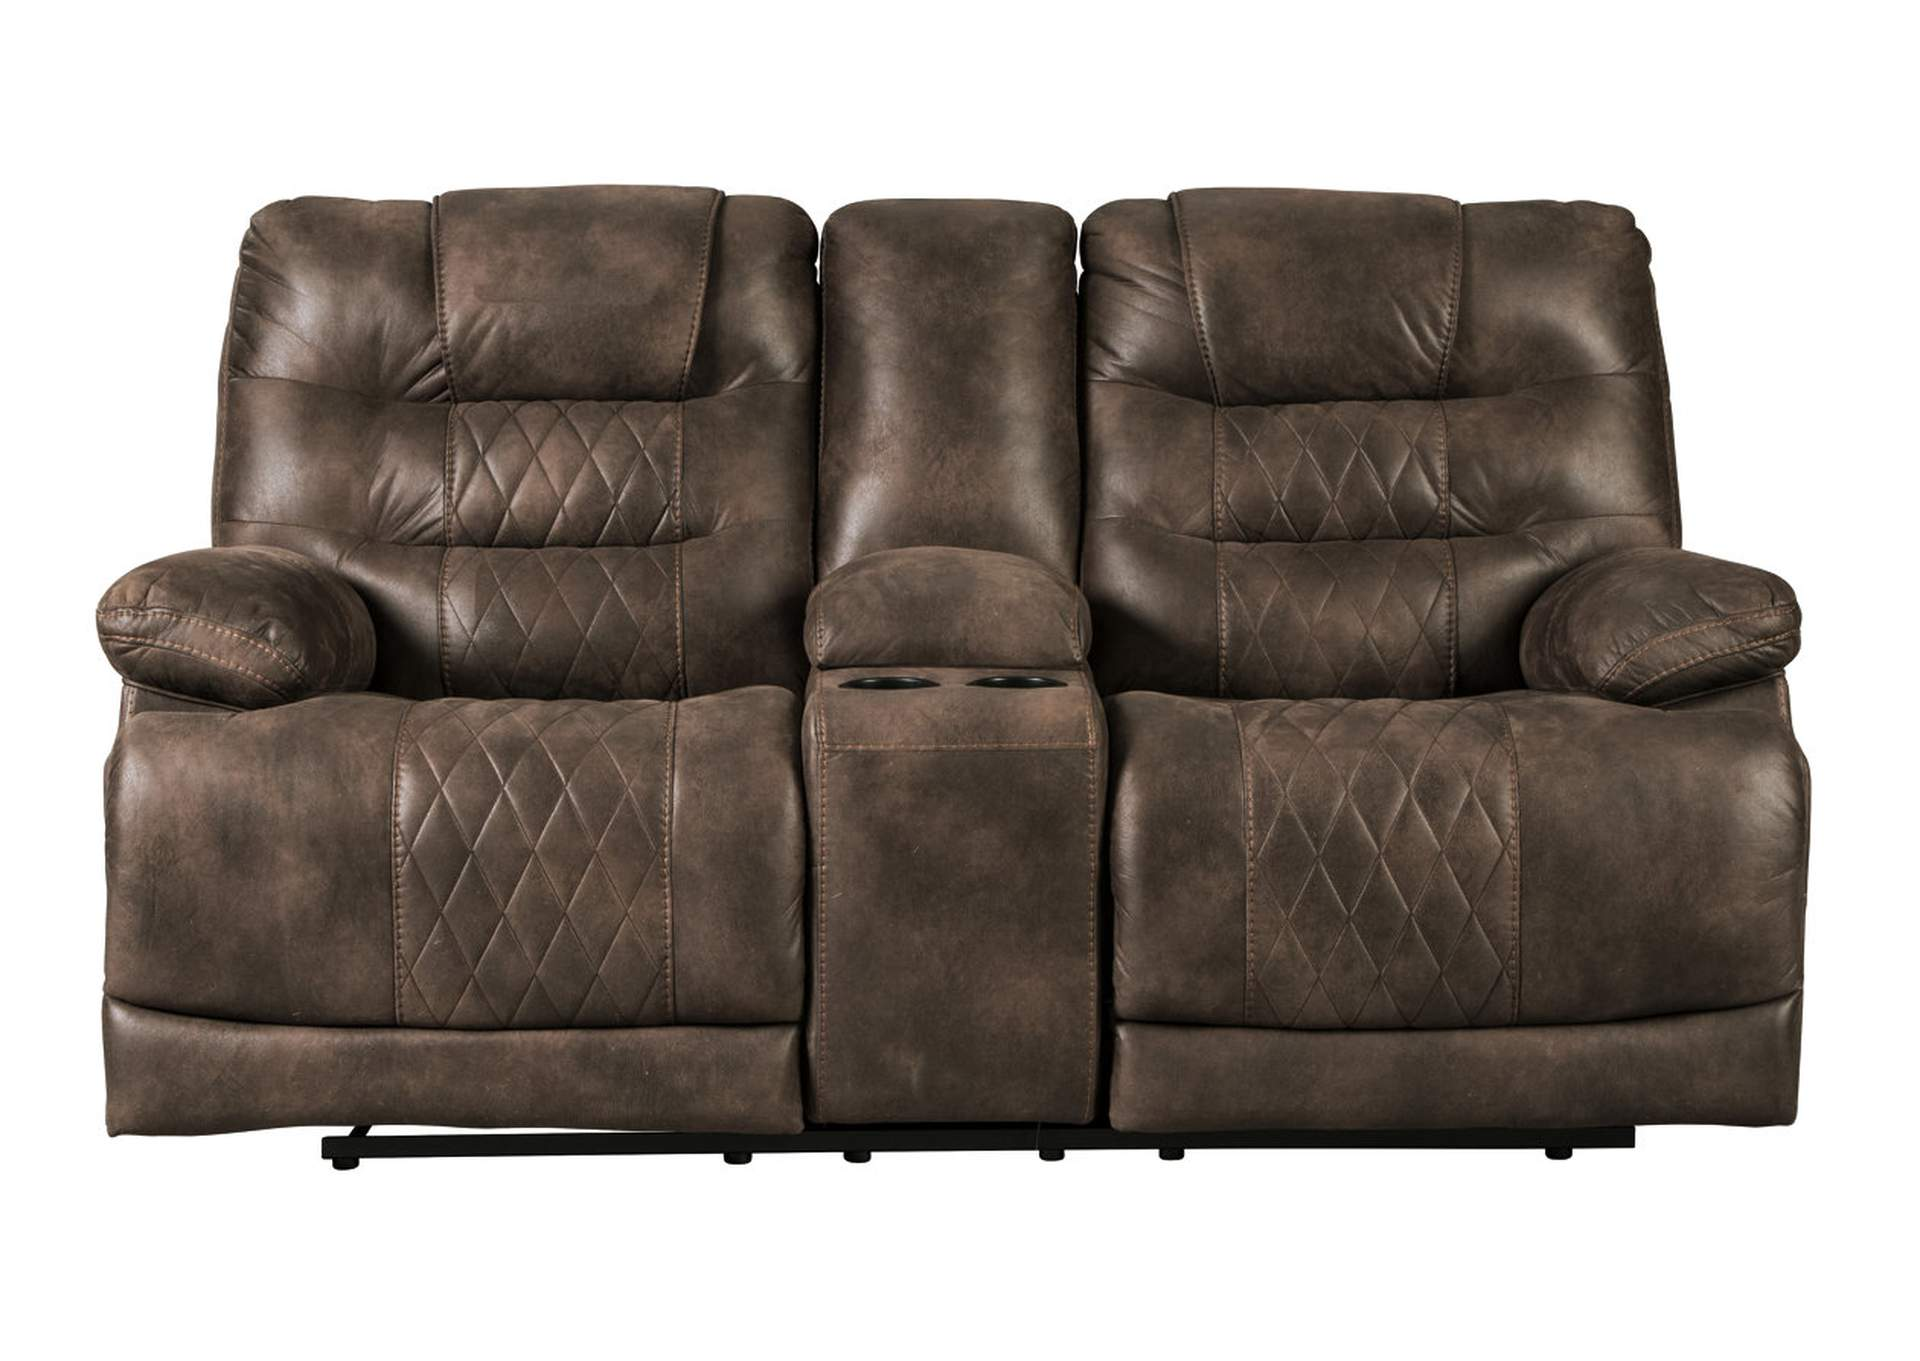 Welsford Walnut Power Reclining Loveseat w/Console & Adjustable Headrest,Signature Design By Ashley